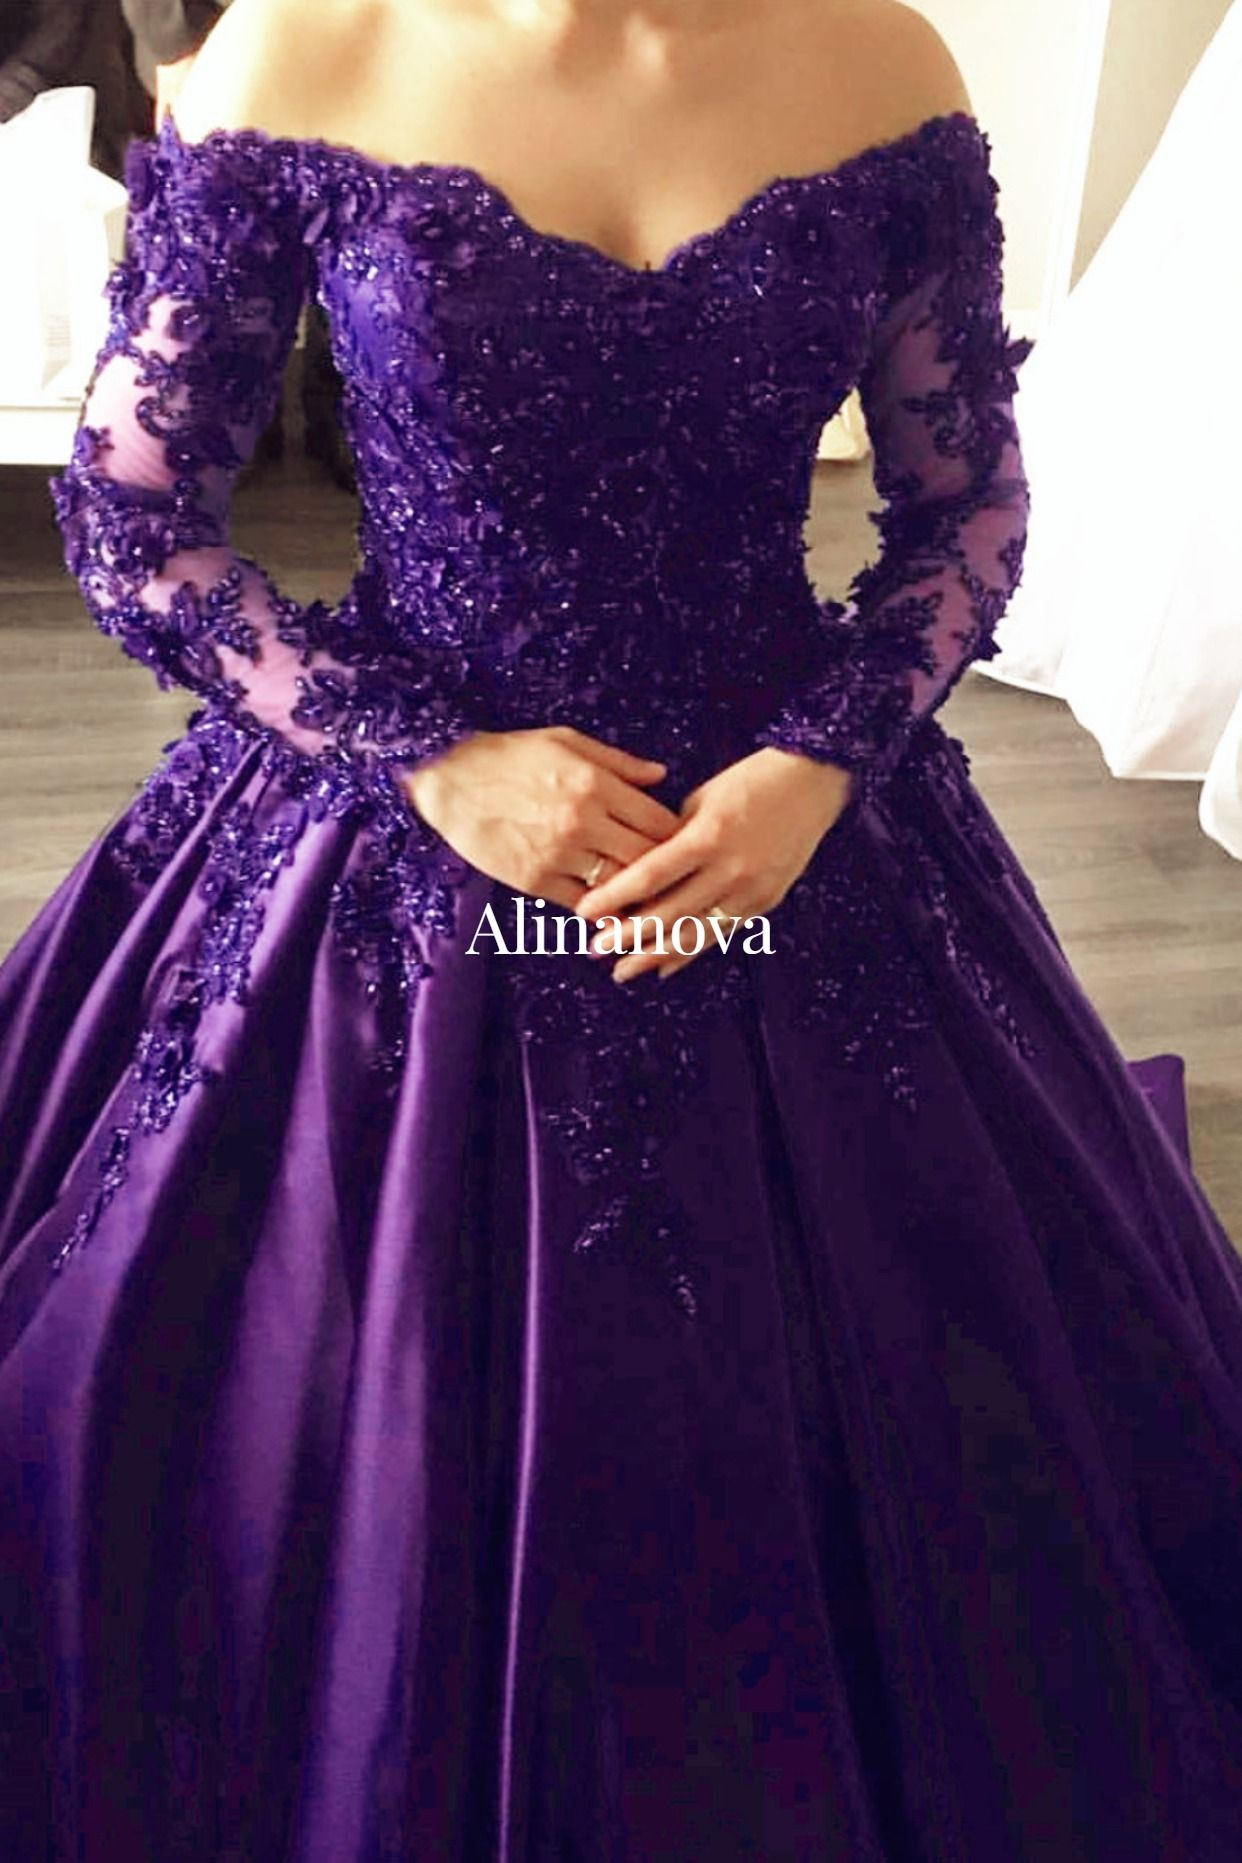 Lace Appliques Long Sleeves Ball Gowns Wedding Dresses Off Shoulder Long Sleeve Ball Gown Wedding Dress Long Sleeve Ball Gowns Gowns [ 1863 x 1242 Pixel ]